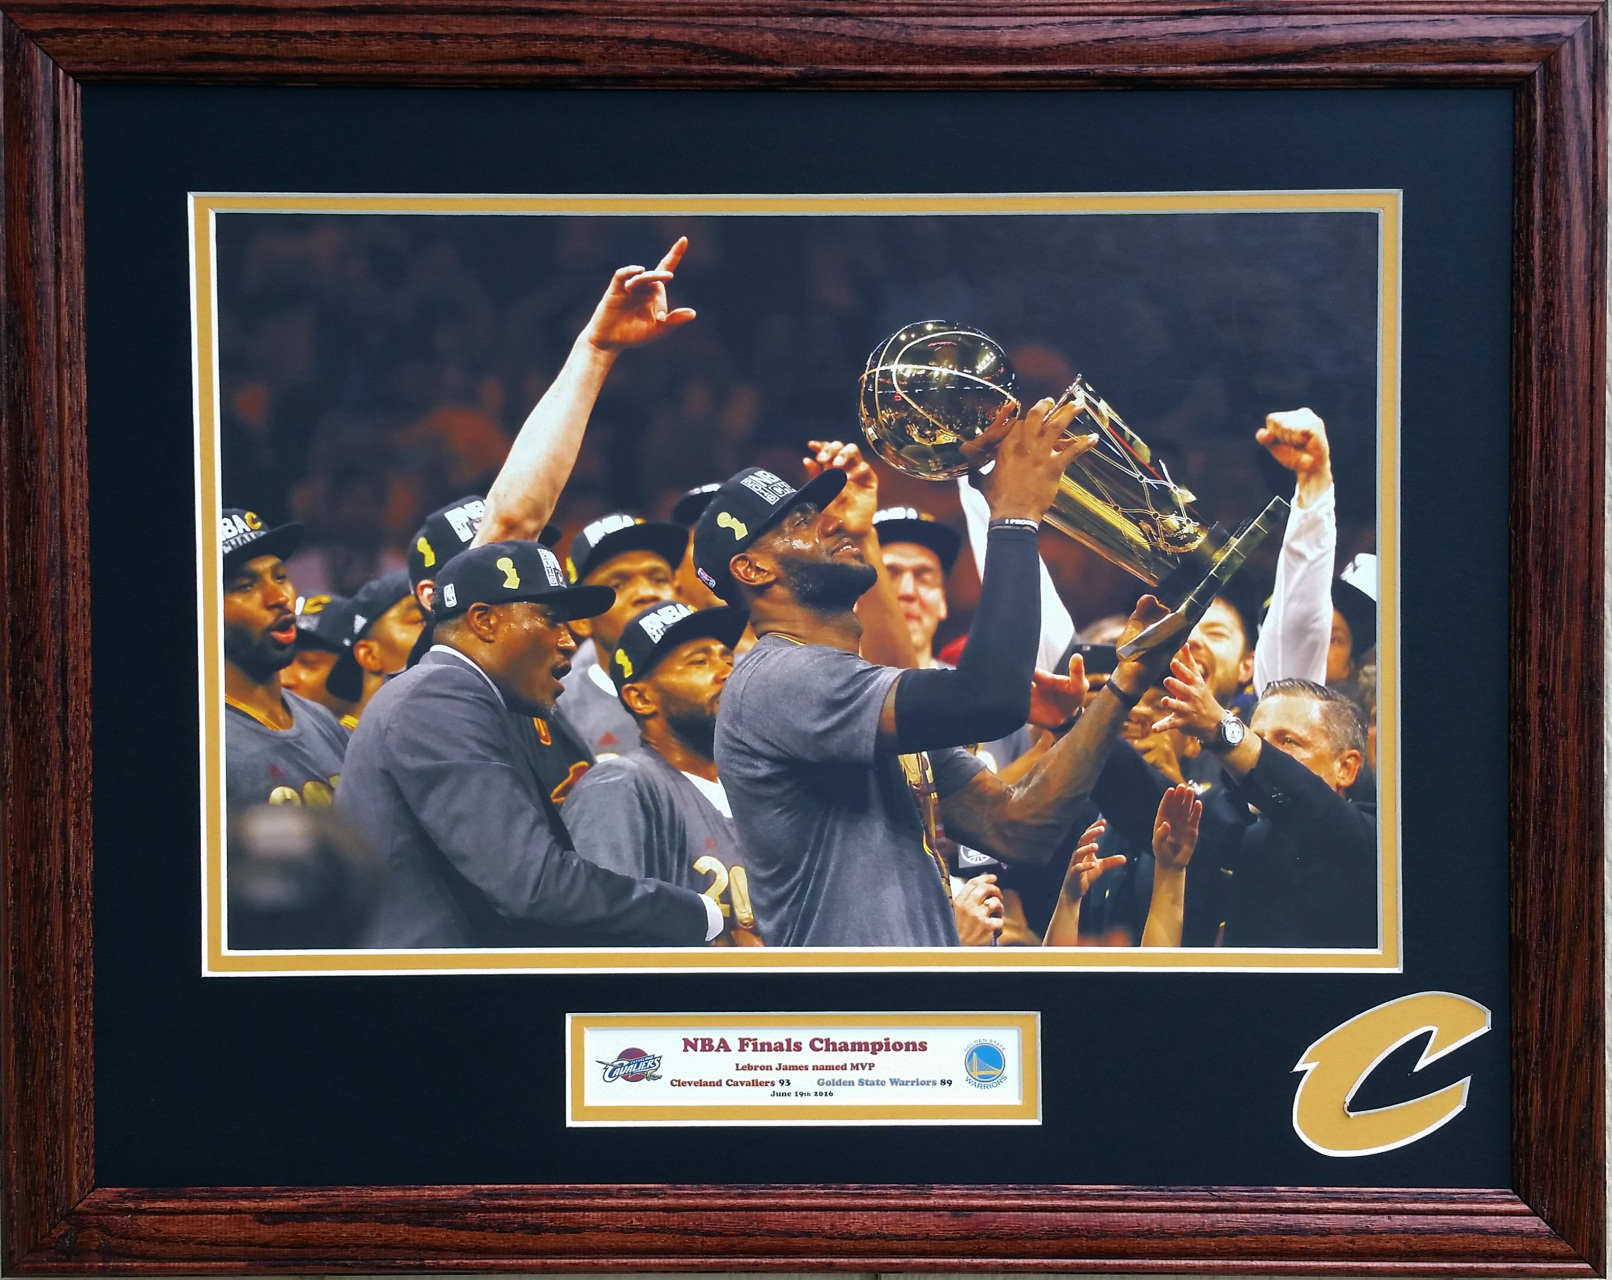 Cleveland cavaliers memorabilia picture this framing co cleveland cavaliers 2016 nba finals champions 16 x 20 inches jeuxipadfo Image collections